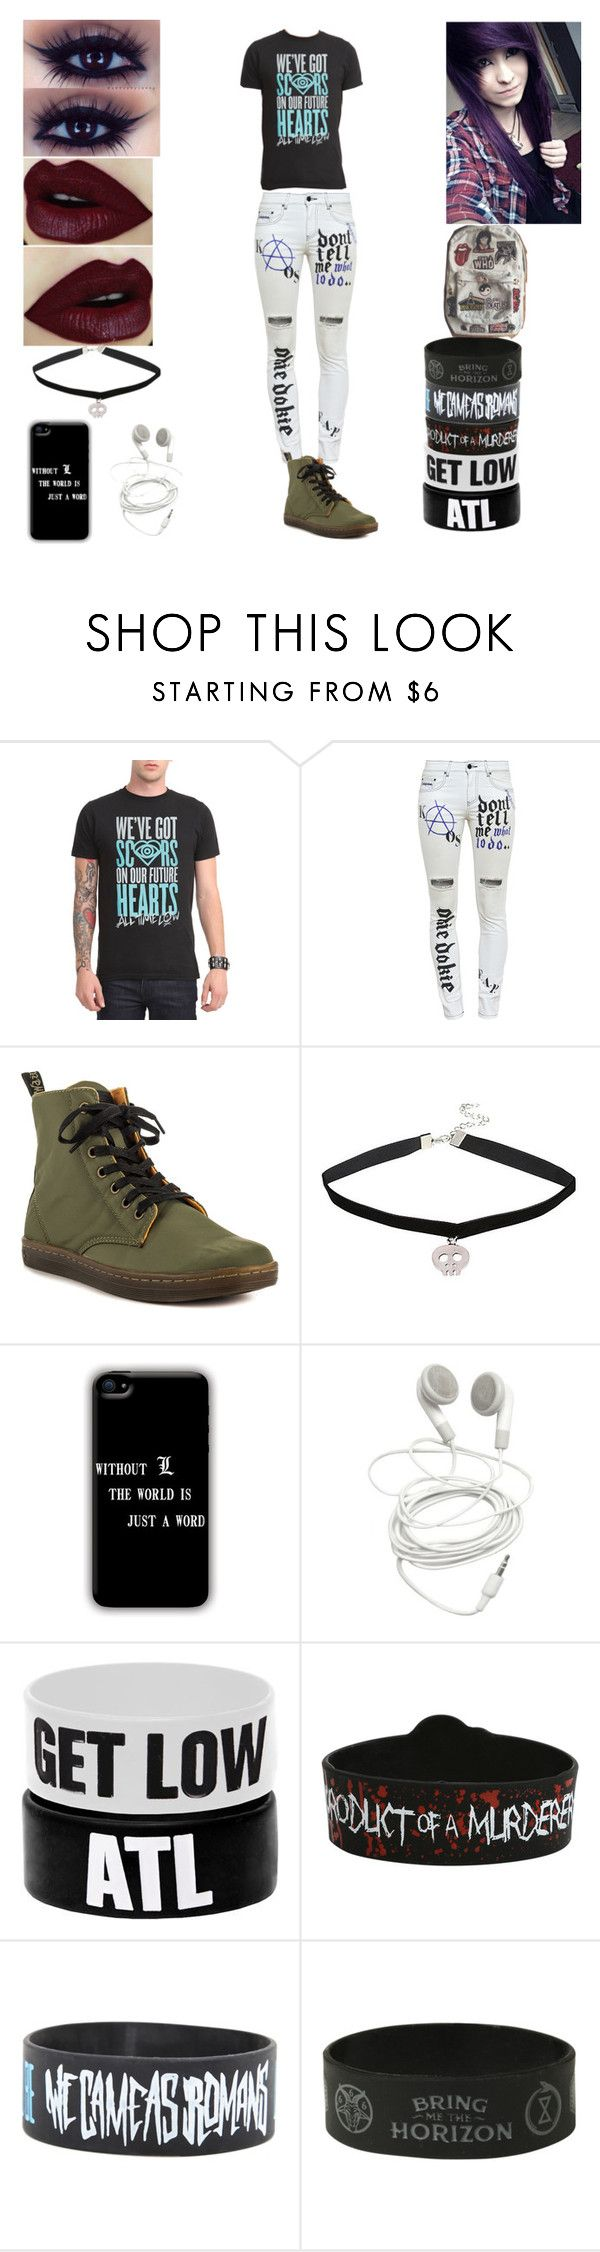 """Untitled #246"" by threedaystoremember ❤ liked on Polyvore featuring Filles à papa and Dr. Martens"